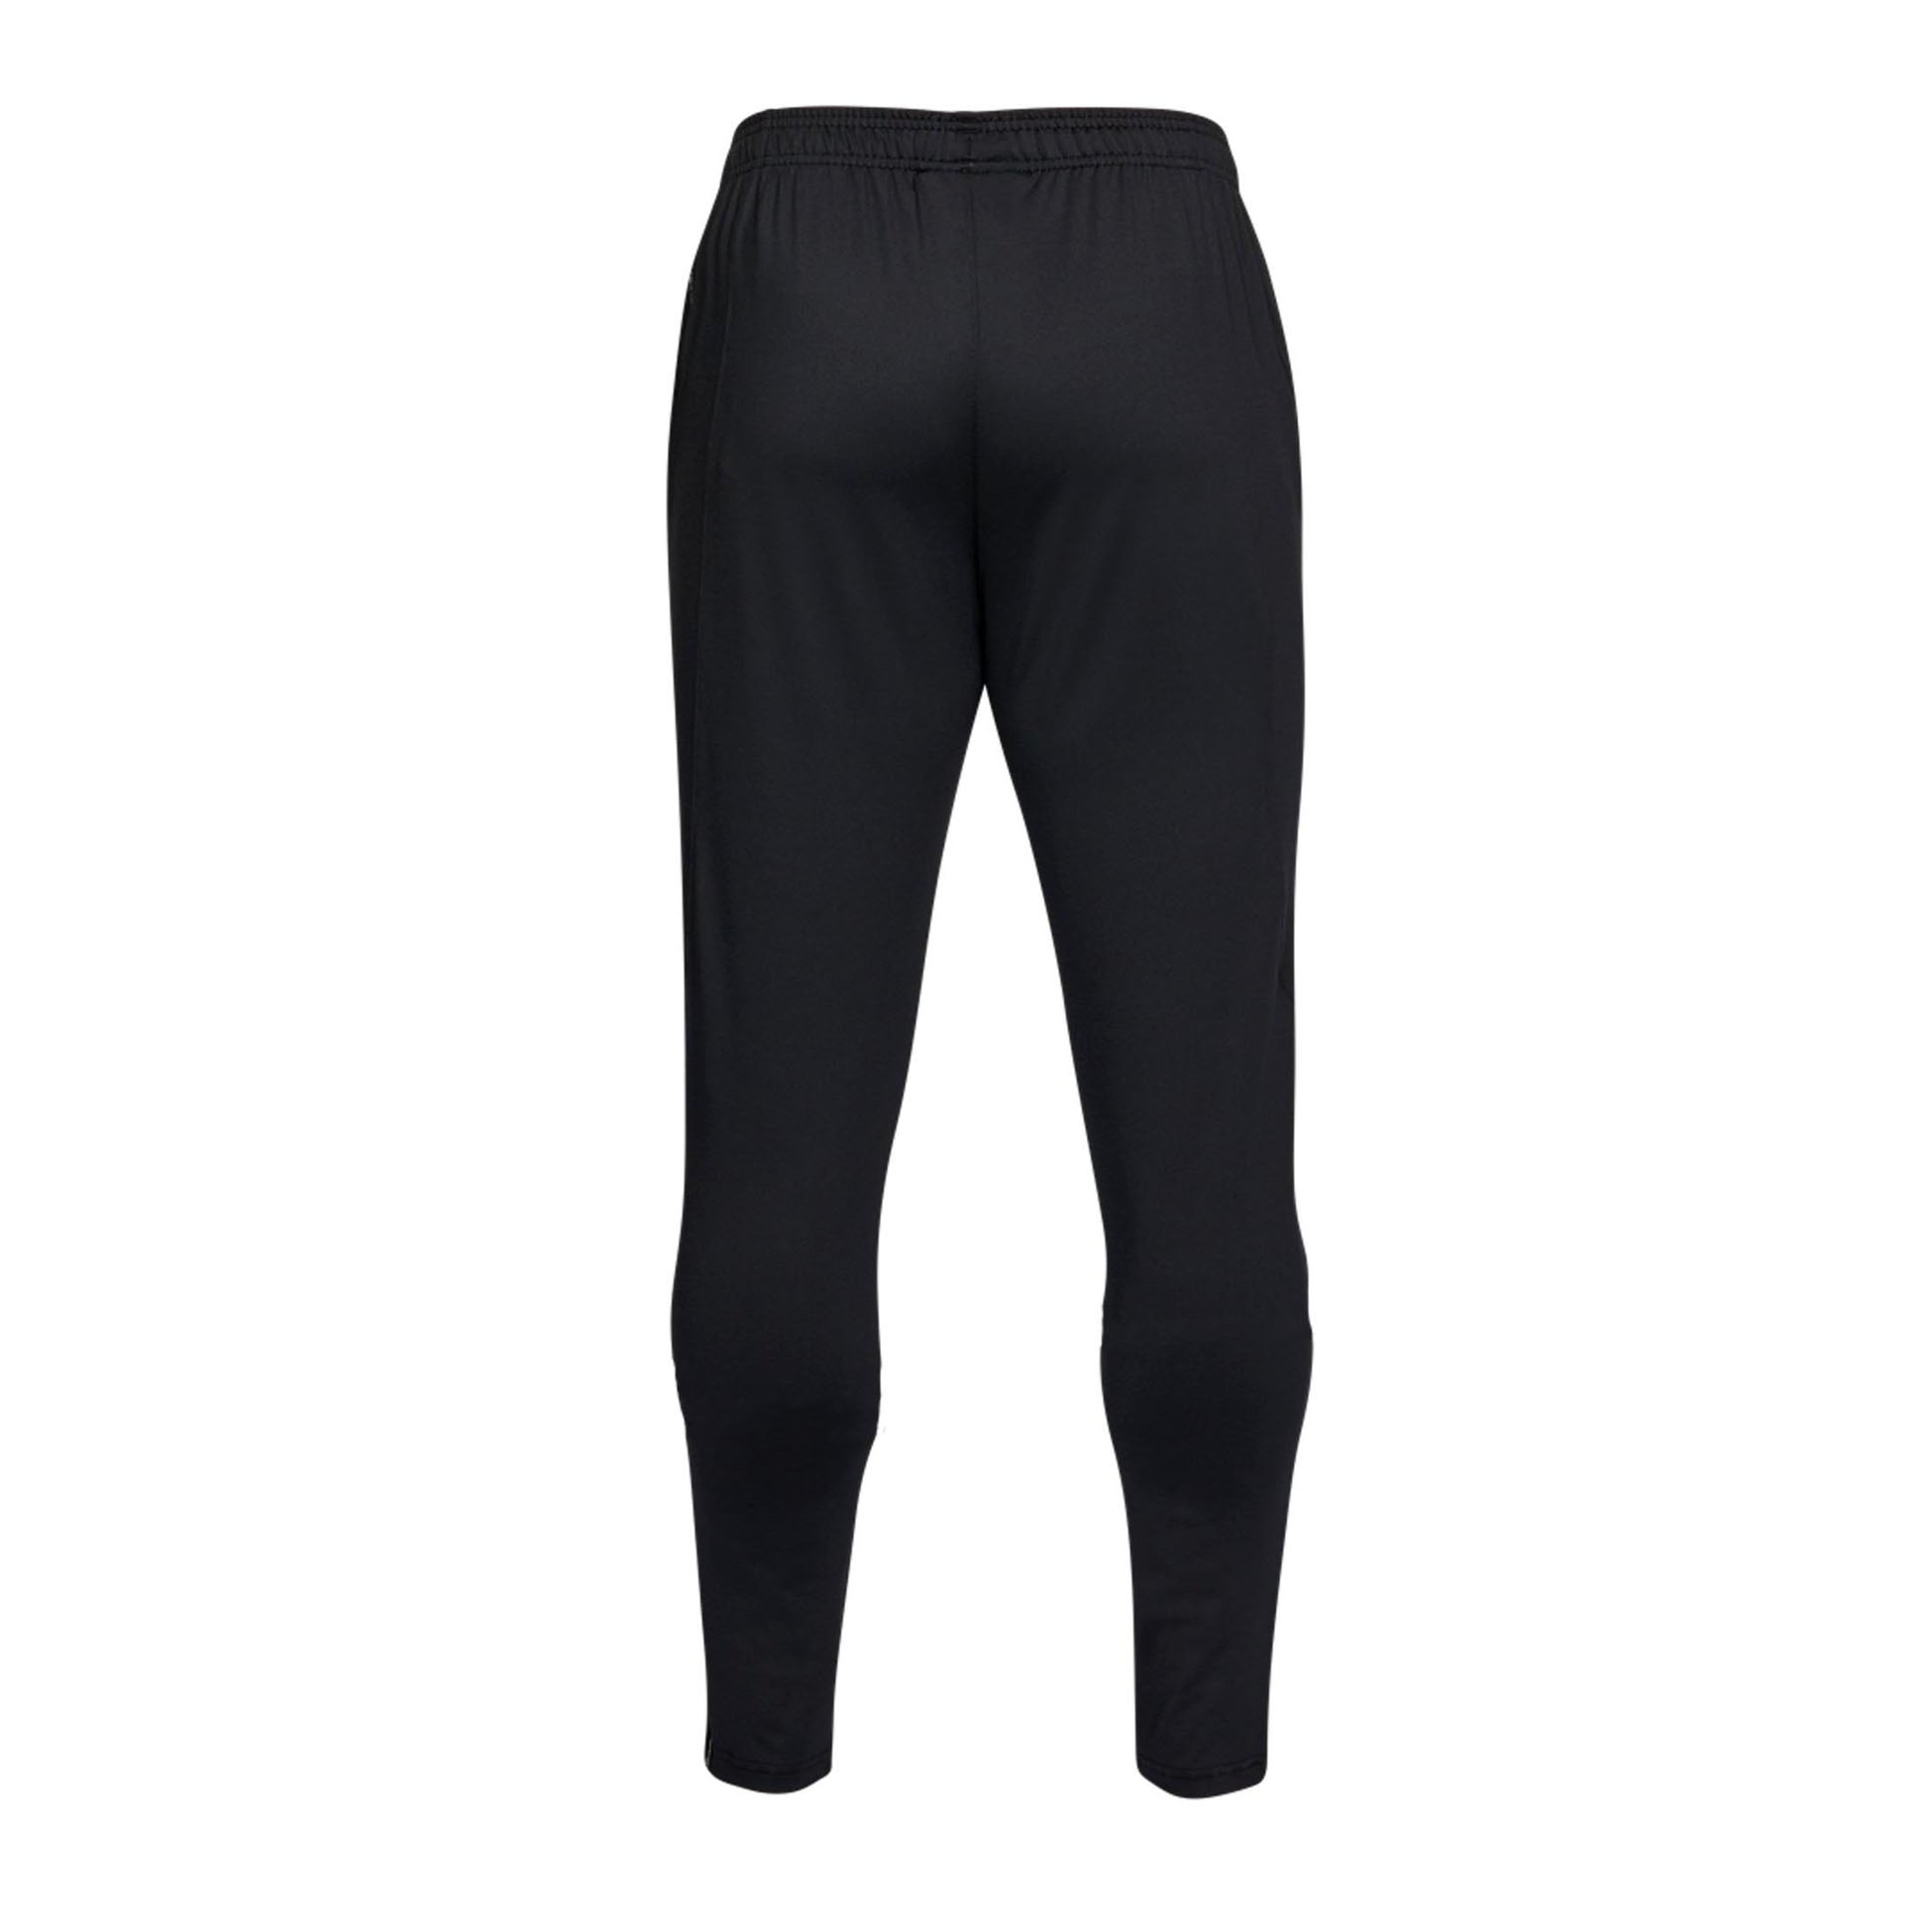 515792e7ca851 Under Armour Challenger II Training Kids Tapered Tracksuit Pant Trouser